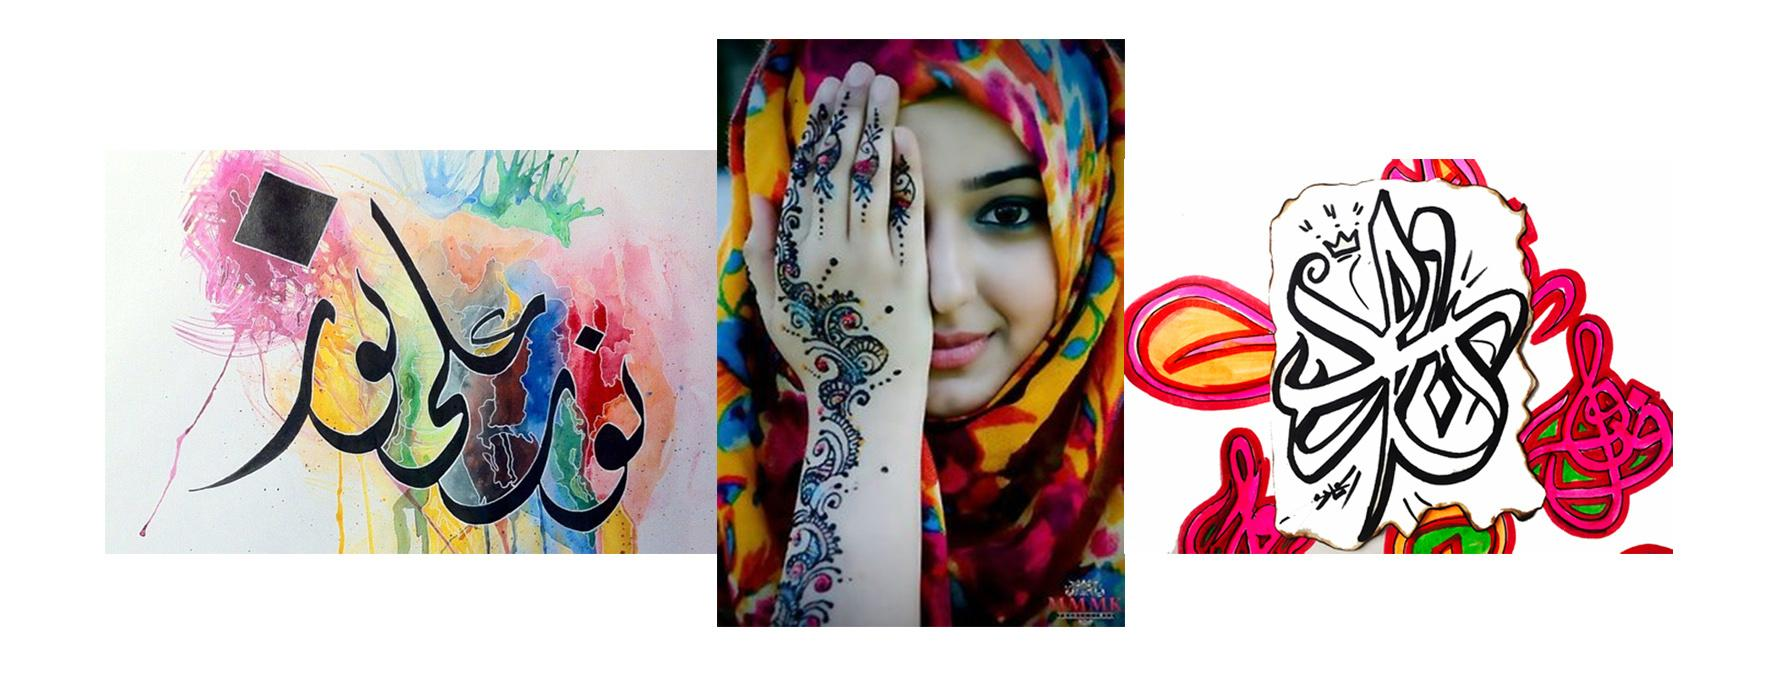 Arabic culture imagery